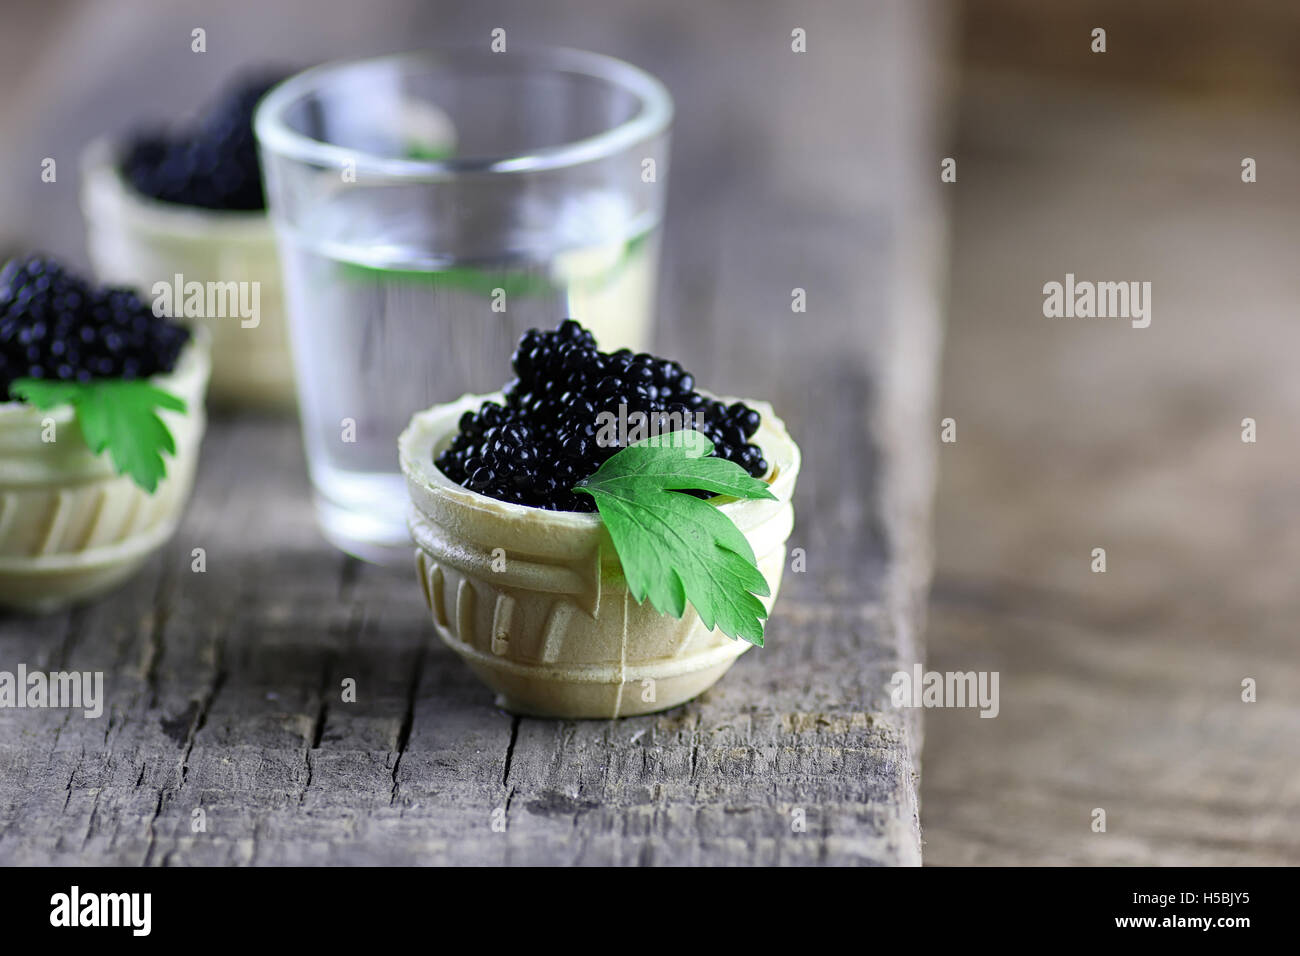 black caviar on a wooden background Stock Photo